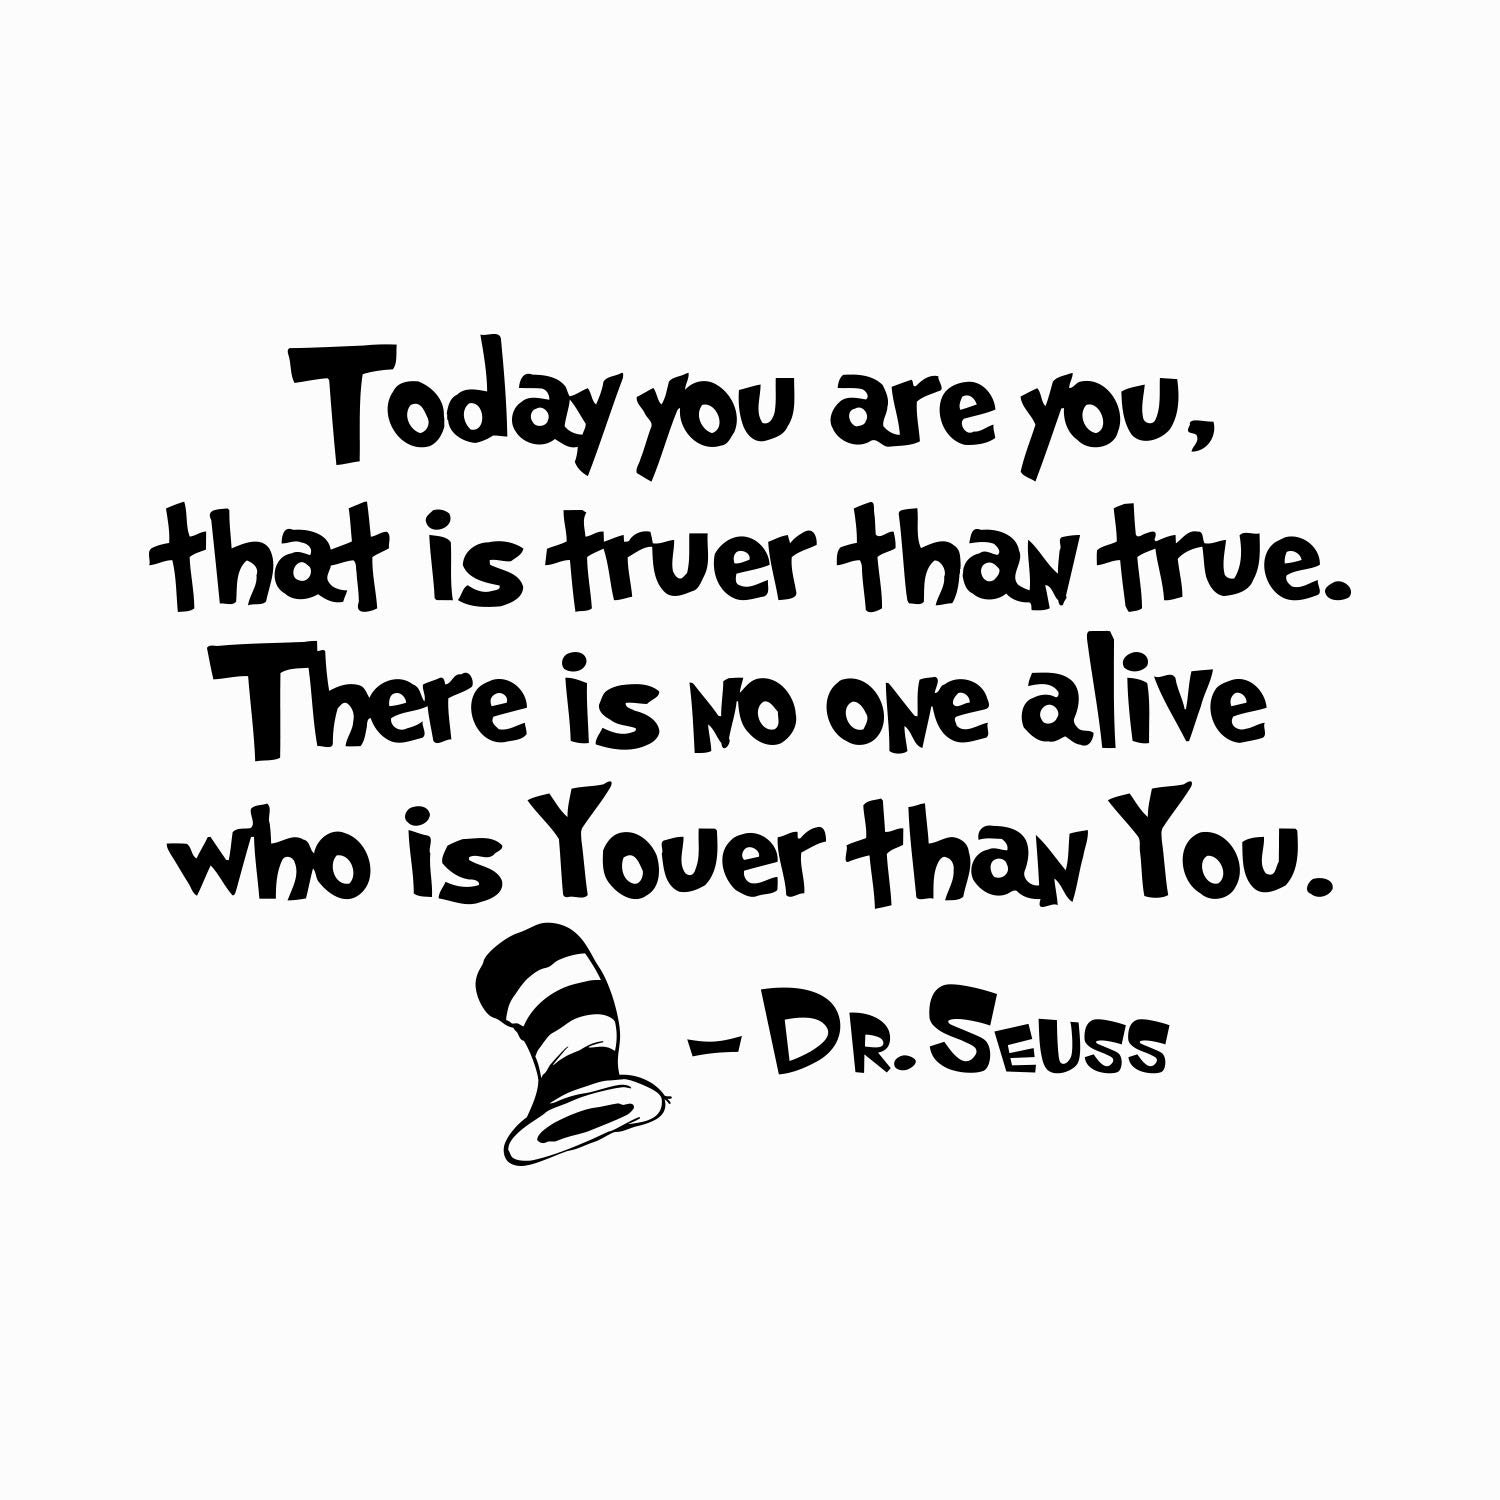 Wallxdecal Quote Wall Decal Dr Seuss Vinyl Sticker Decals Quotes Today You Are You That Is Truer Than True Decal Quote Sayings Decor Nursery Baby X246 Amazon In Home Kitchen